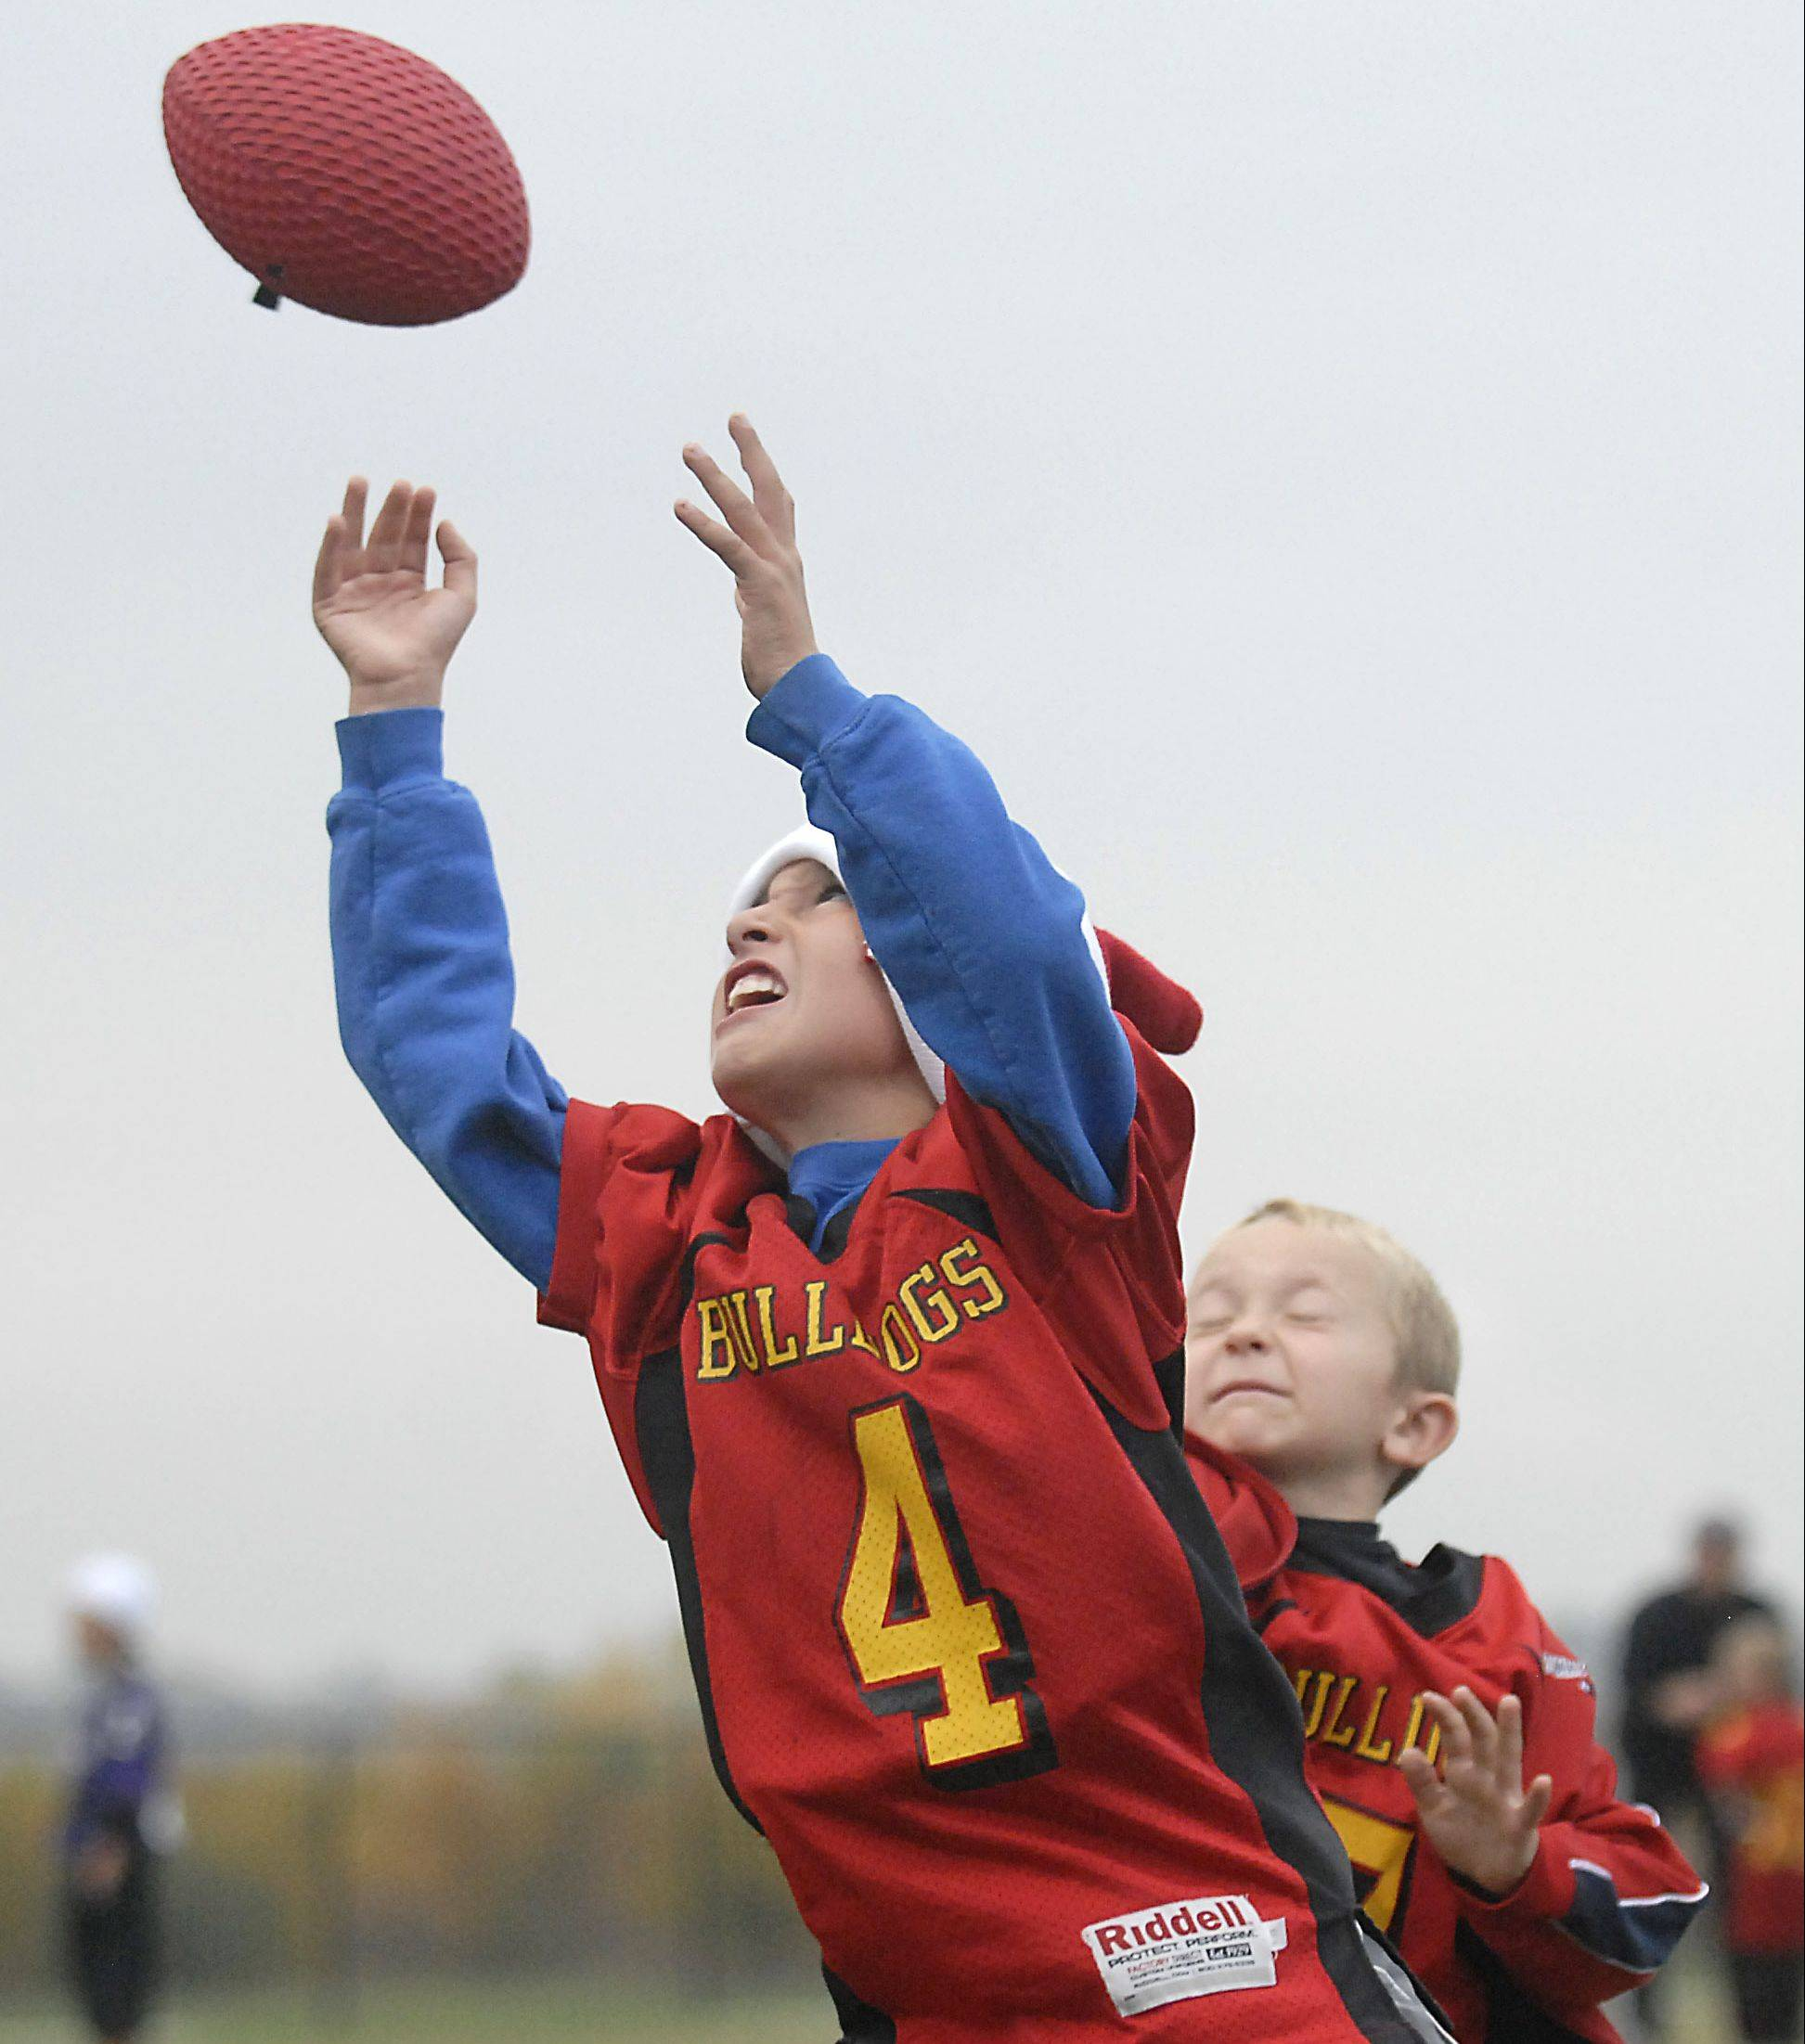 Alex Breytspraak reaches for a pass in front of Zach Sledz, both 7 and from Aurora, during a Batavia Youth Football league game at West Main Park in Batavia.